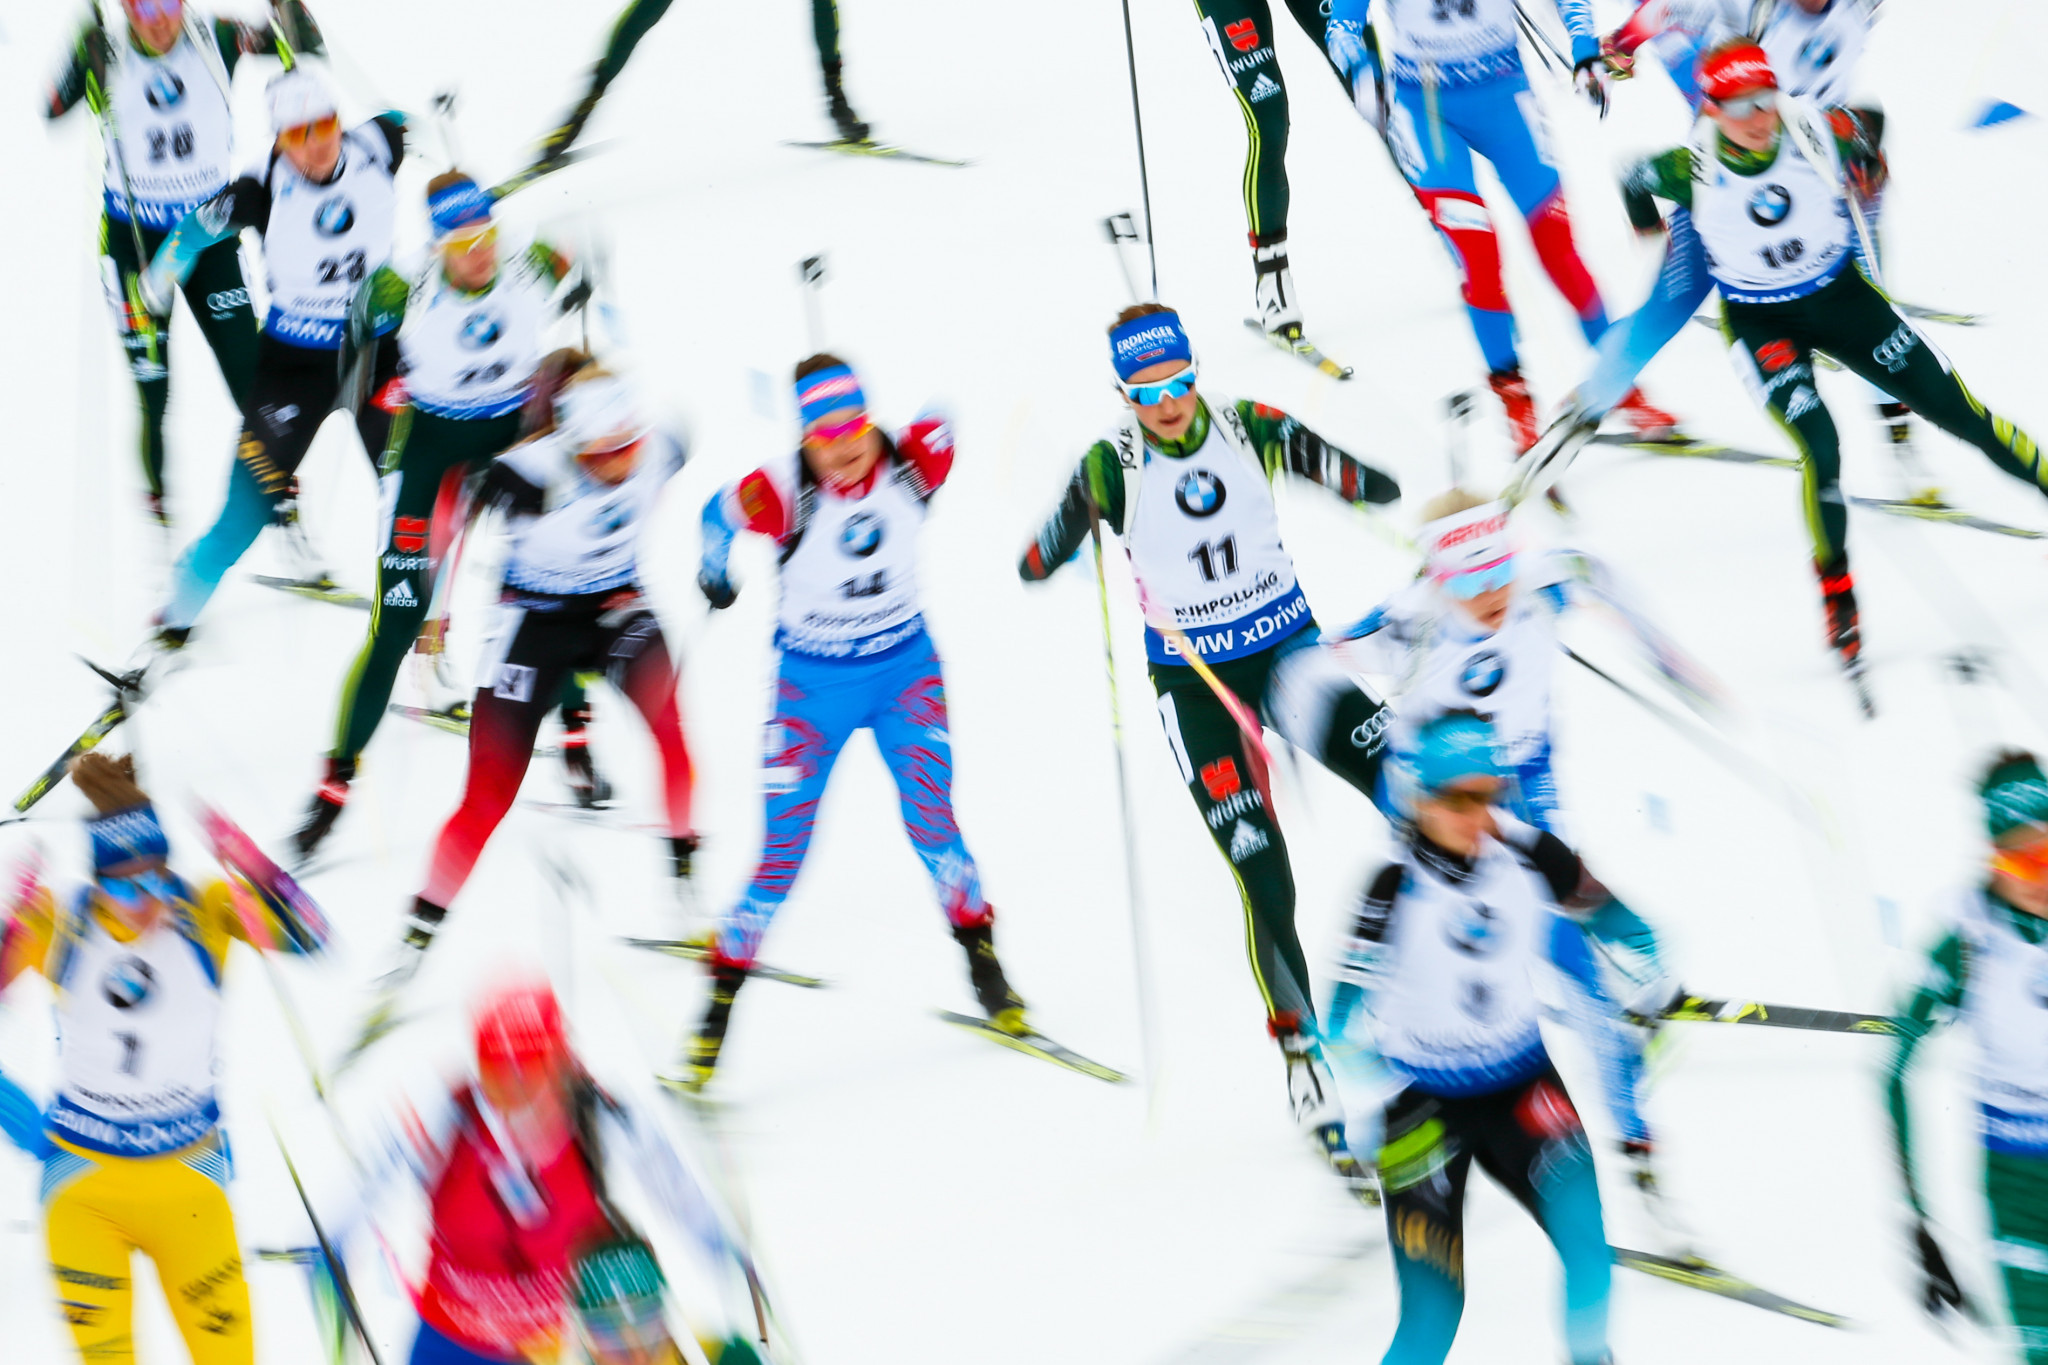 Biathlon has faced governance issues away from the action ©Getty Images